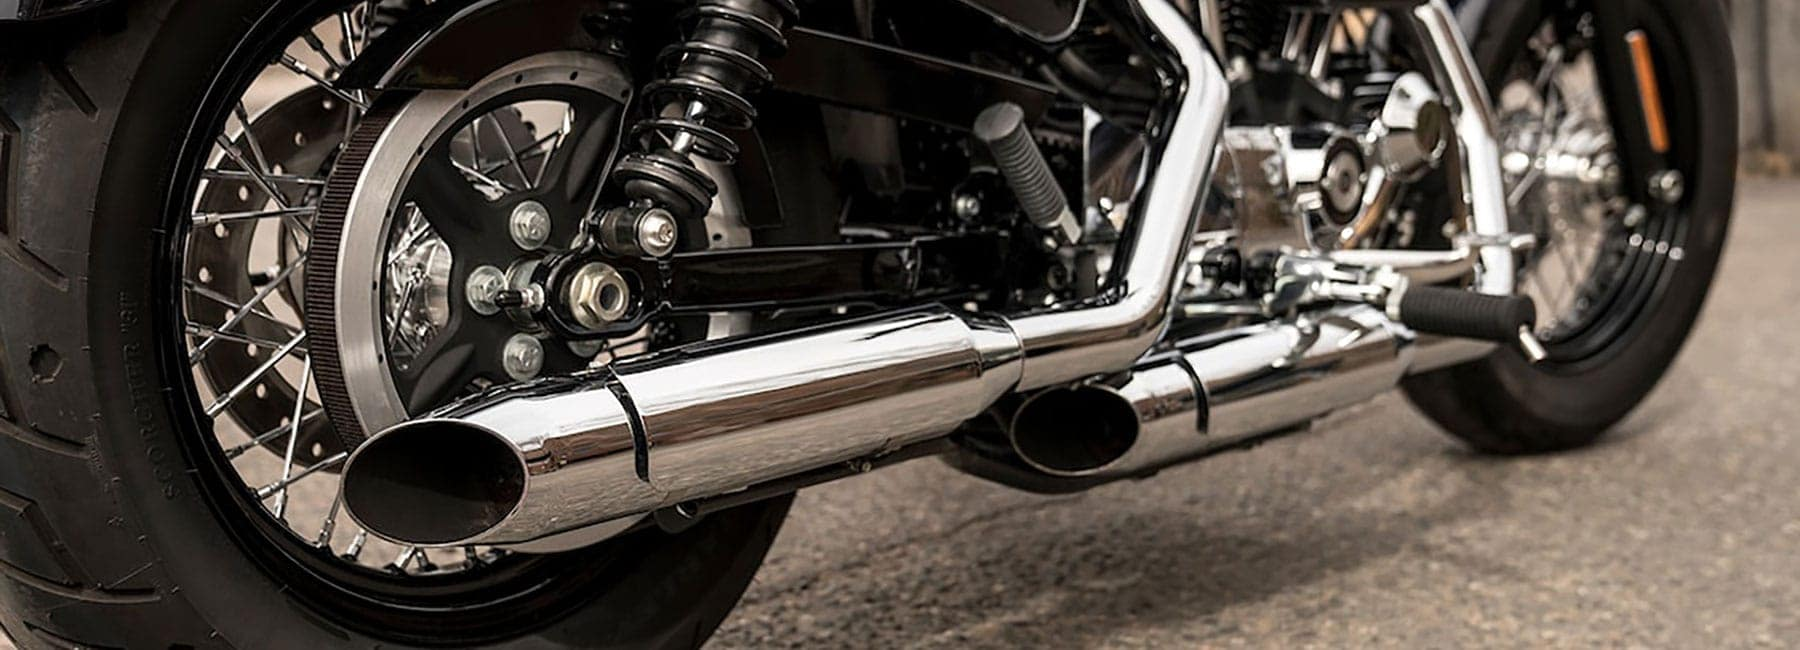 Close up of a Sportsters exhaust pipes